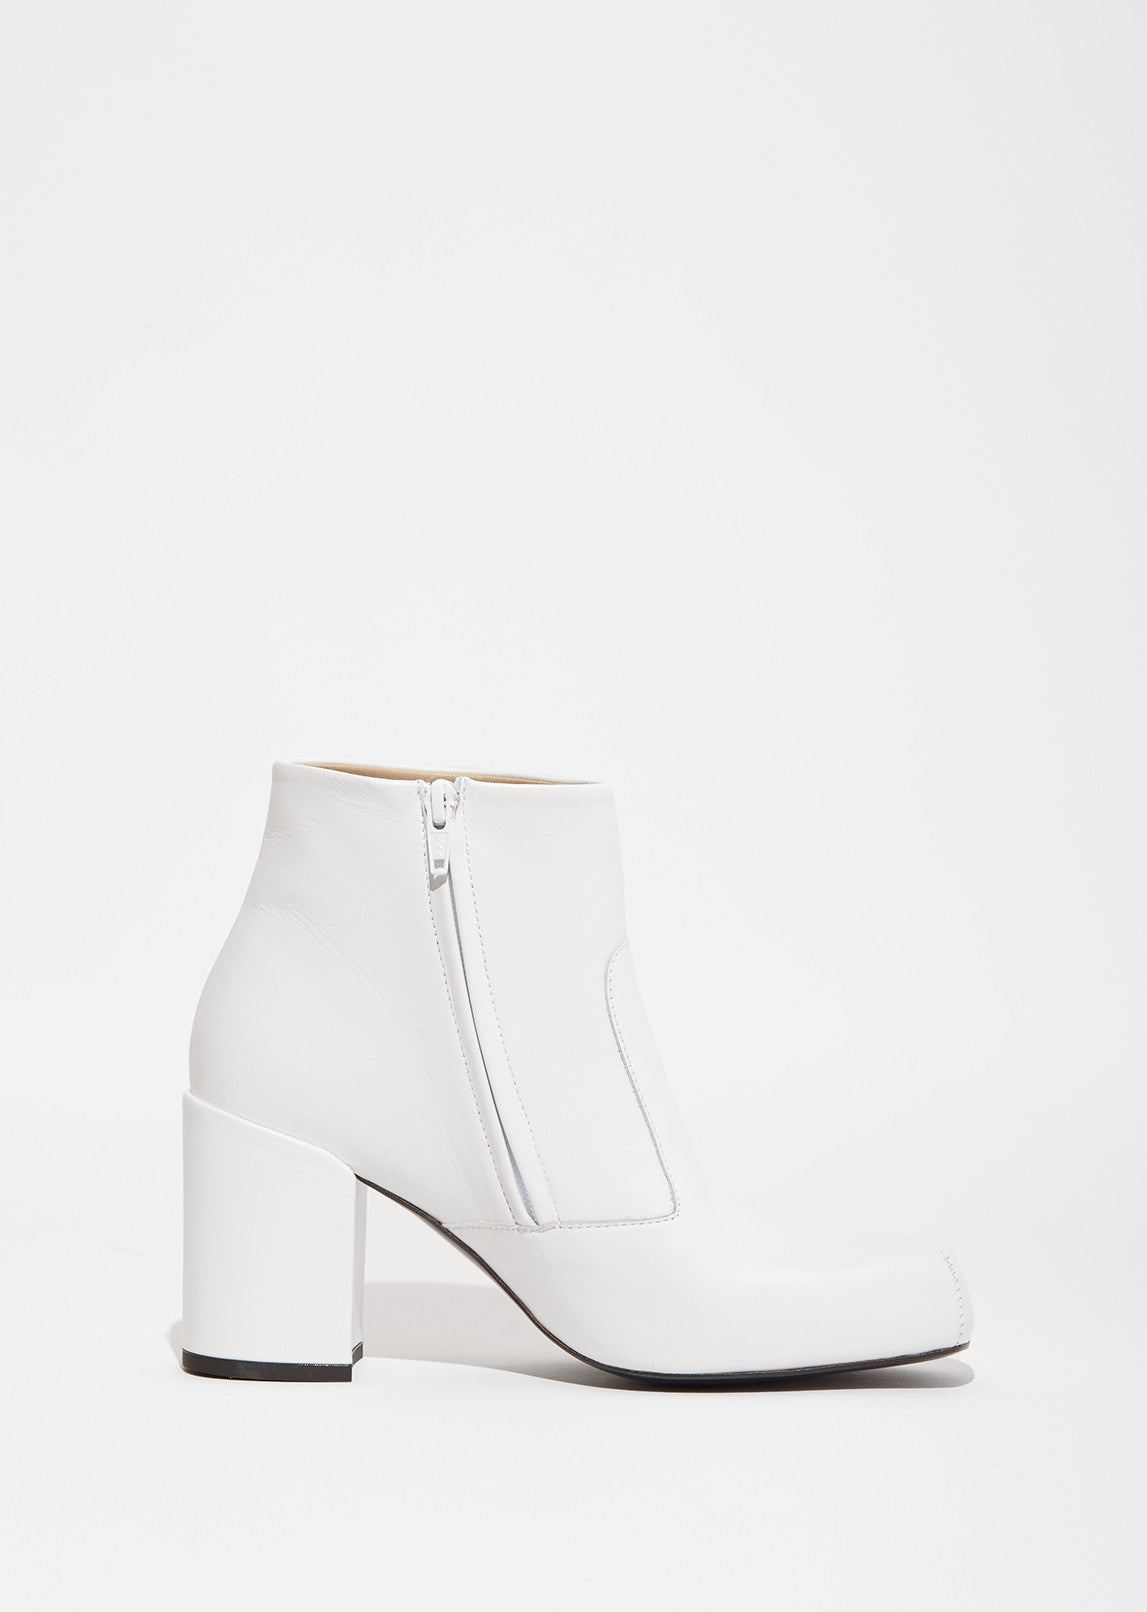 Square Toe Low Boots